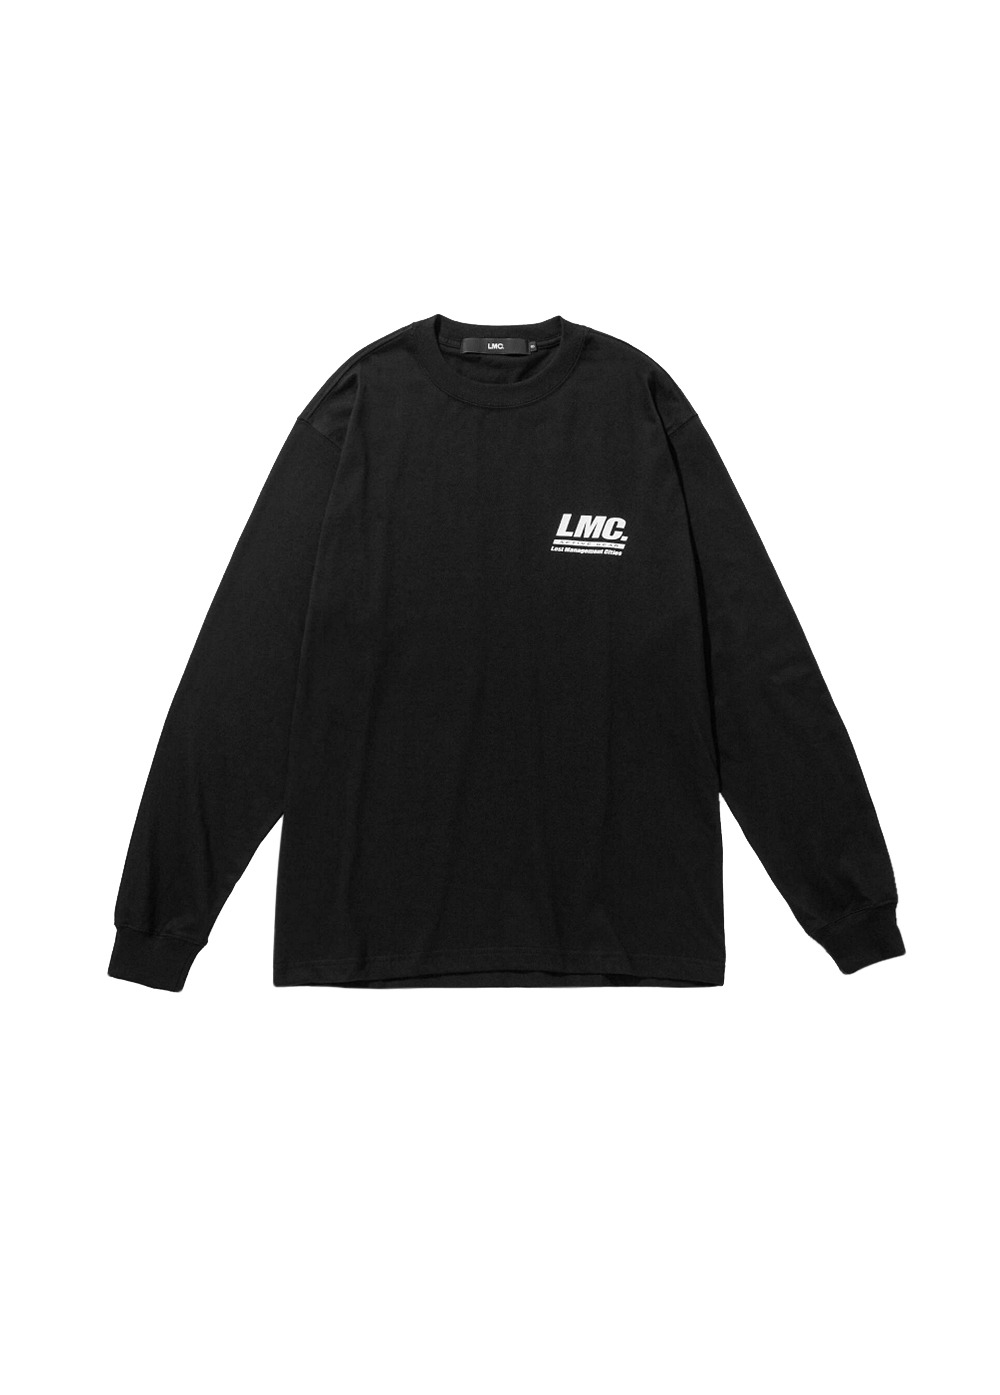 LMC ACTIVE GEAR LONG SLV TEE black